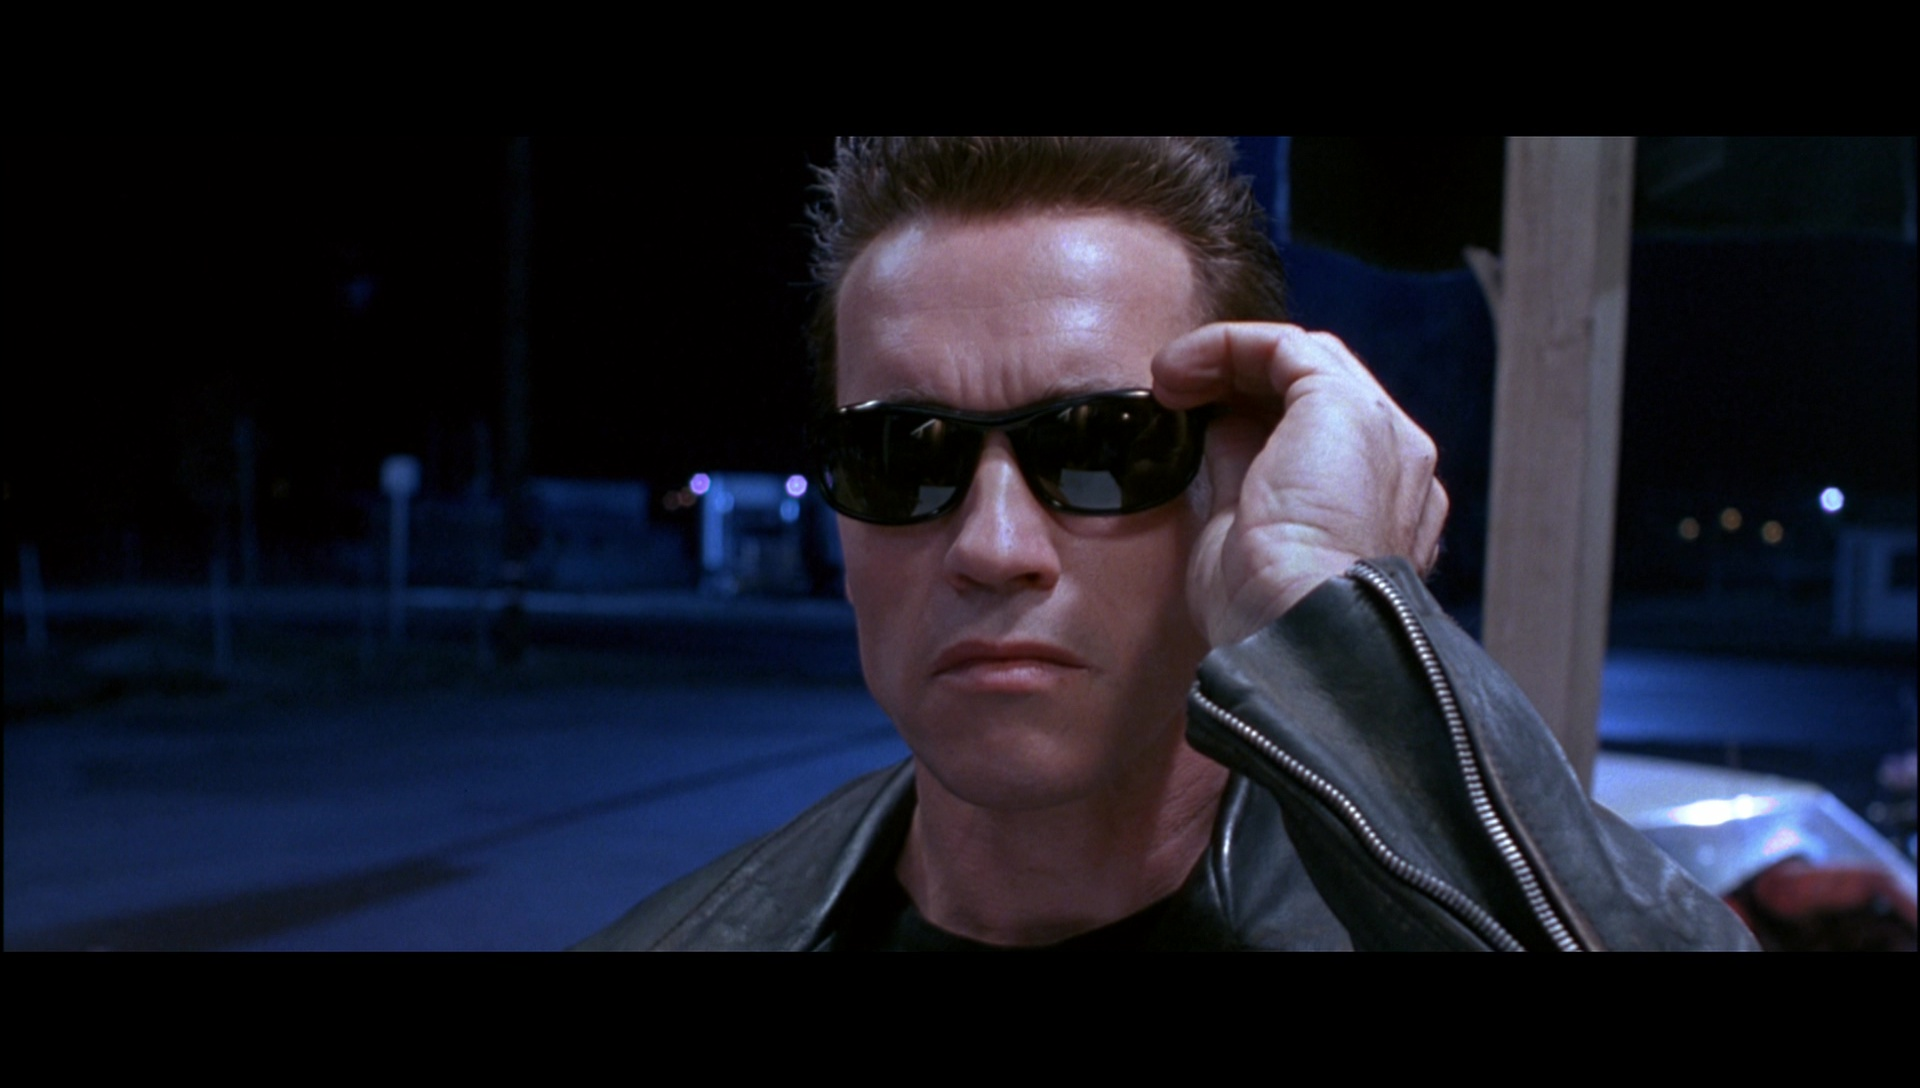 88050c71be Persol Ratti 58230 Sunglasses Worn by Arnold Schwarzenegger in Terminator 2   Judgment Day (1991)